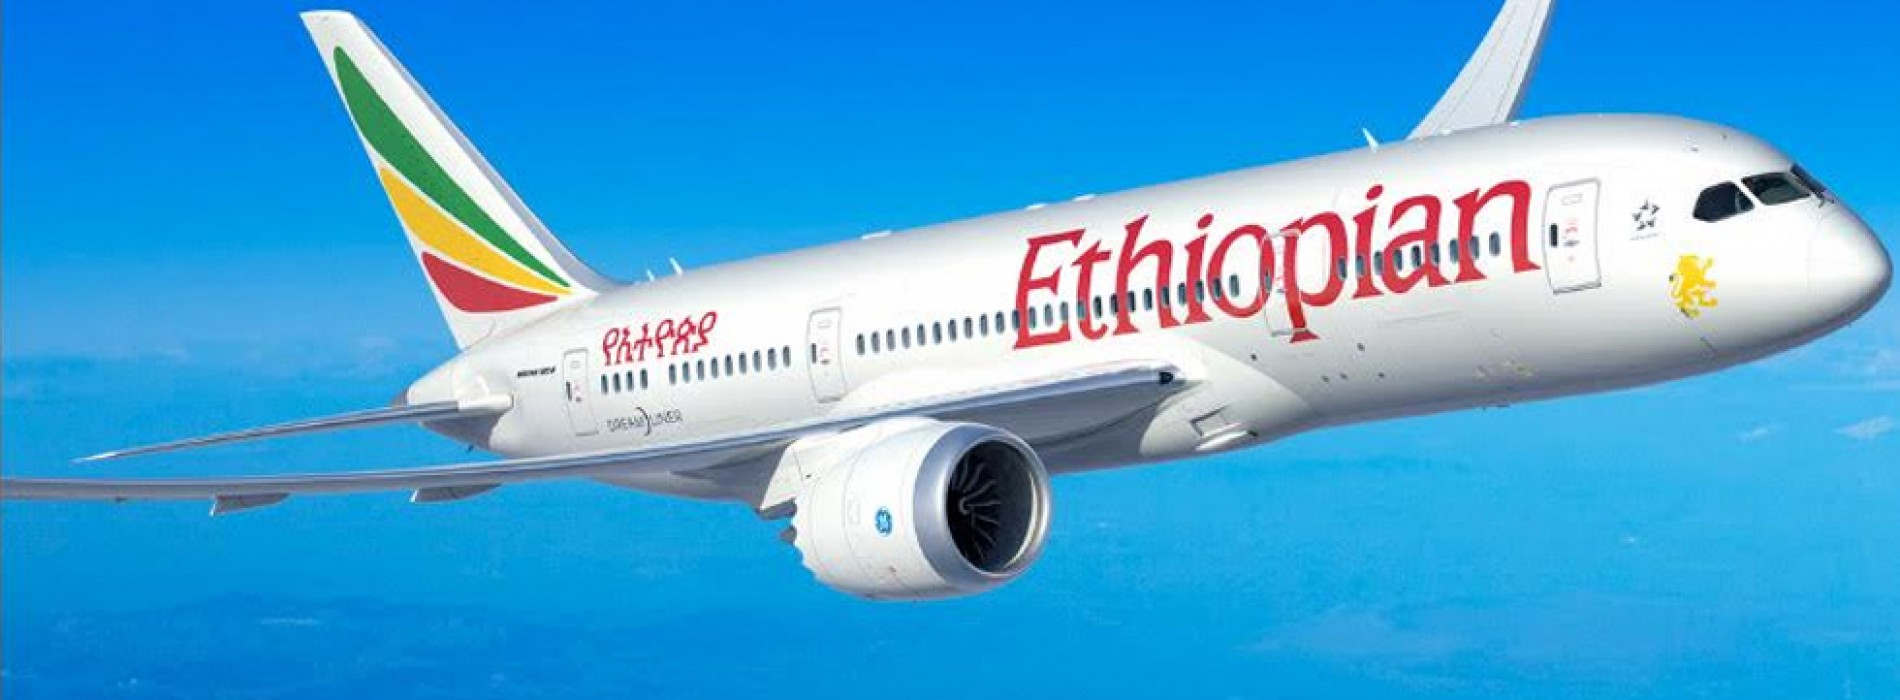 Ethiopian Airlines wins 'Cargo Airline Award for Network Development' at Brussels